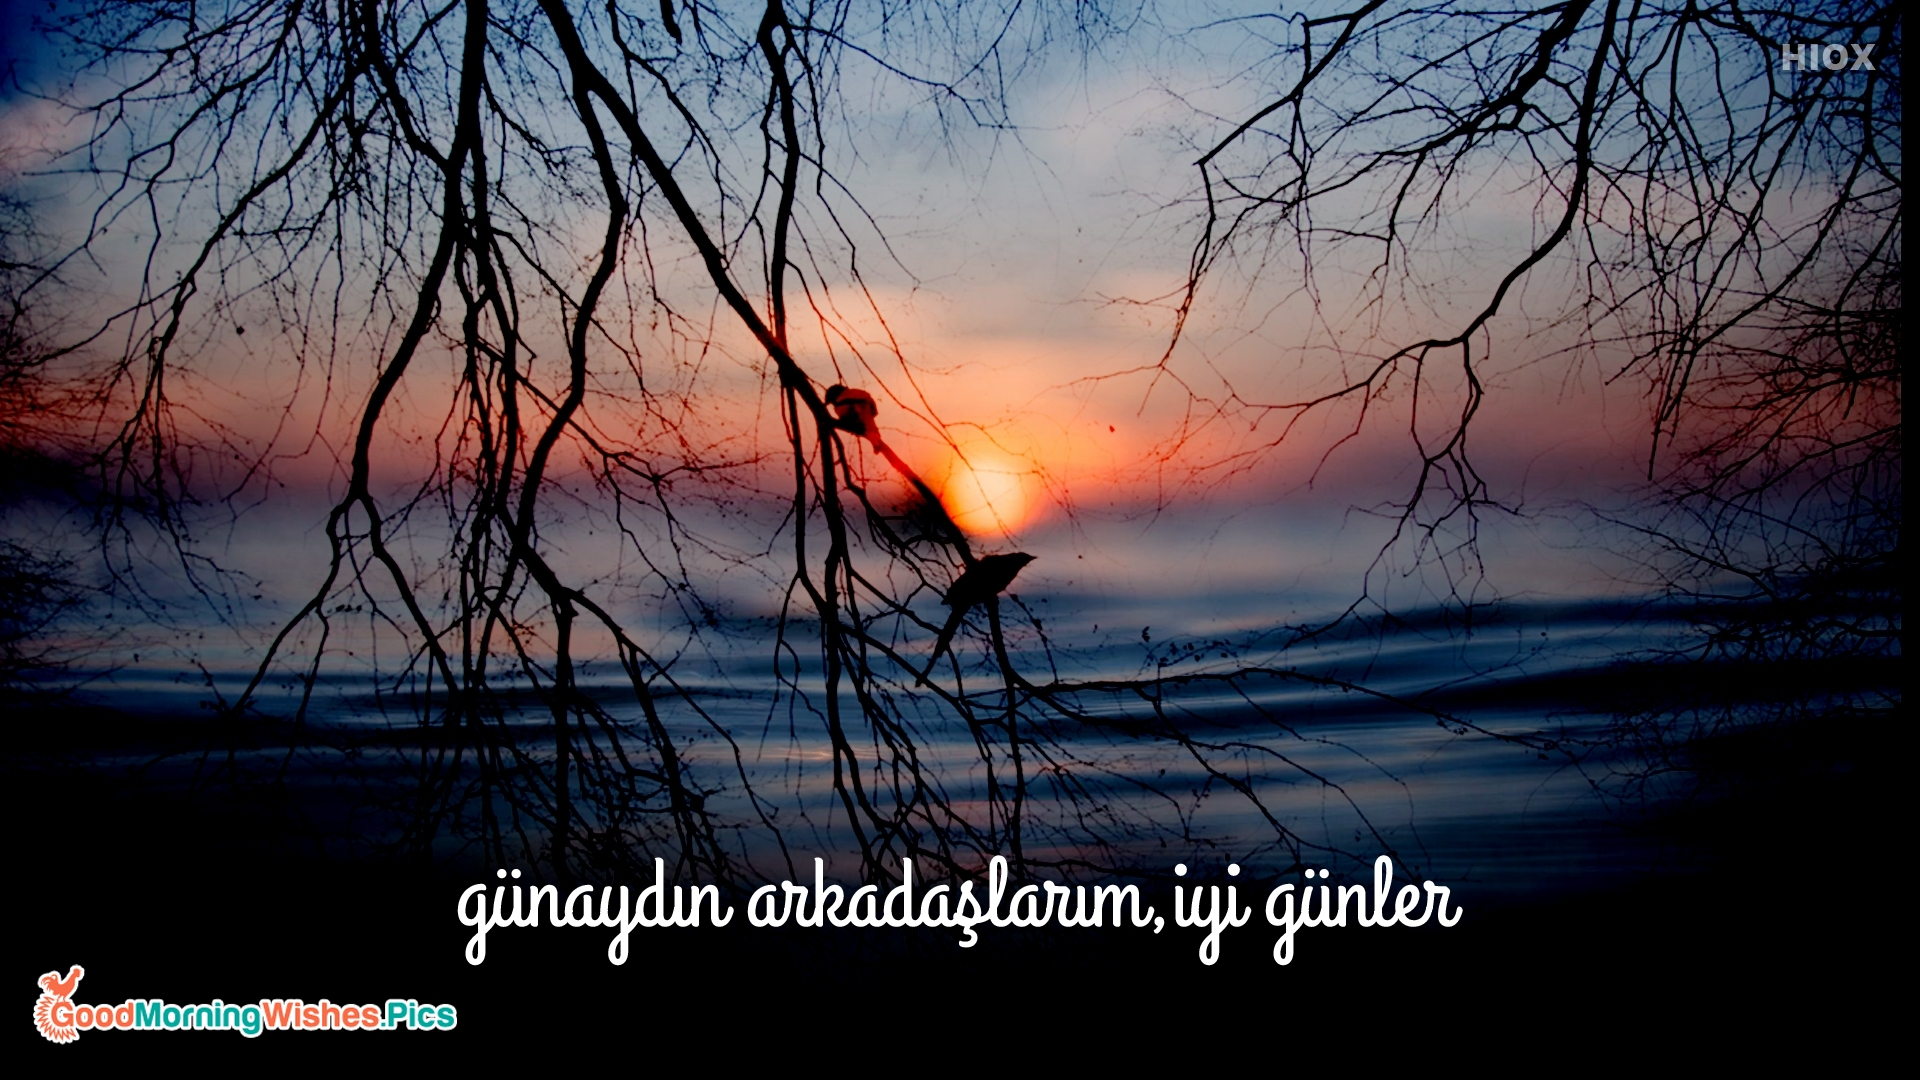 Good Morning My Friends, Have A Nice Day in Turkish